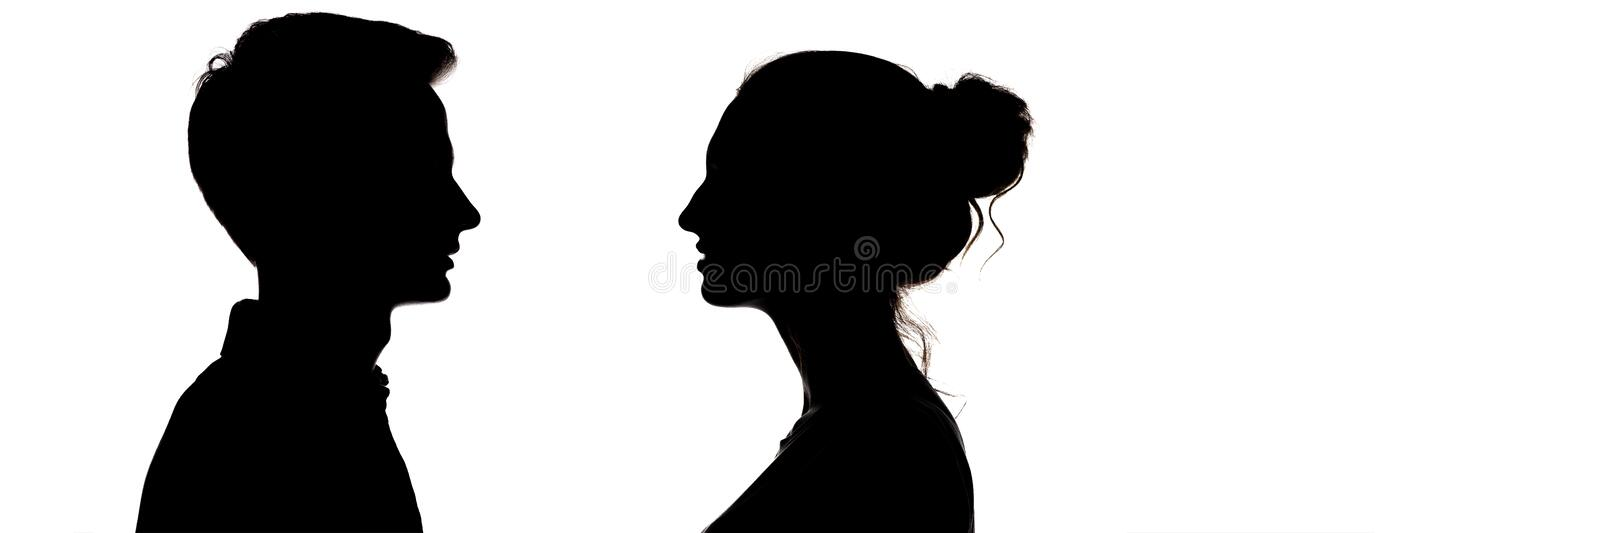 Silhouetteof a guy and a girl looking at each other, head profile of teenagers in love, the concept of relationships and feelings royalty free stock photo